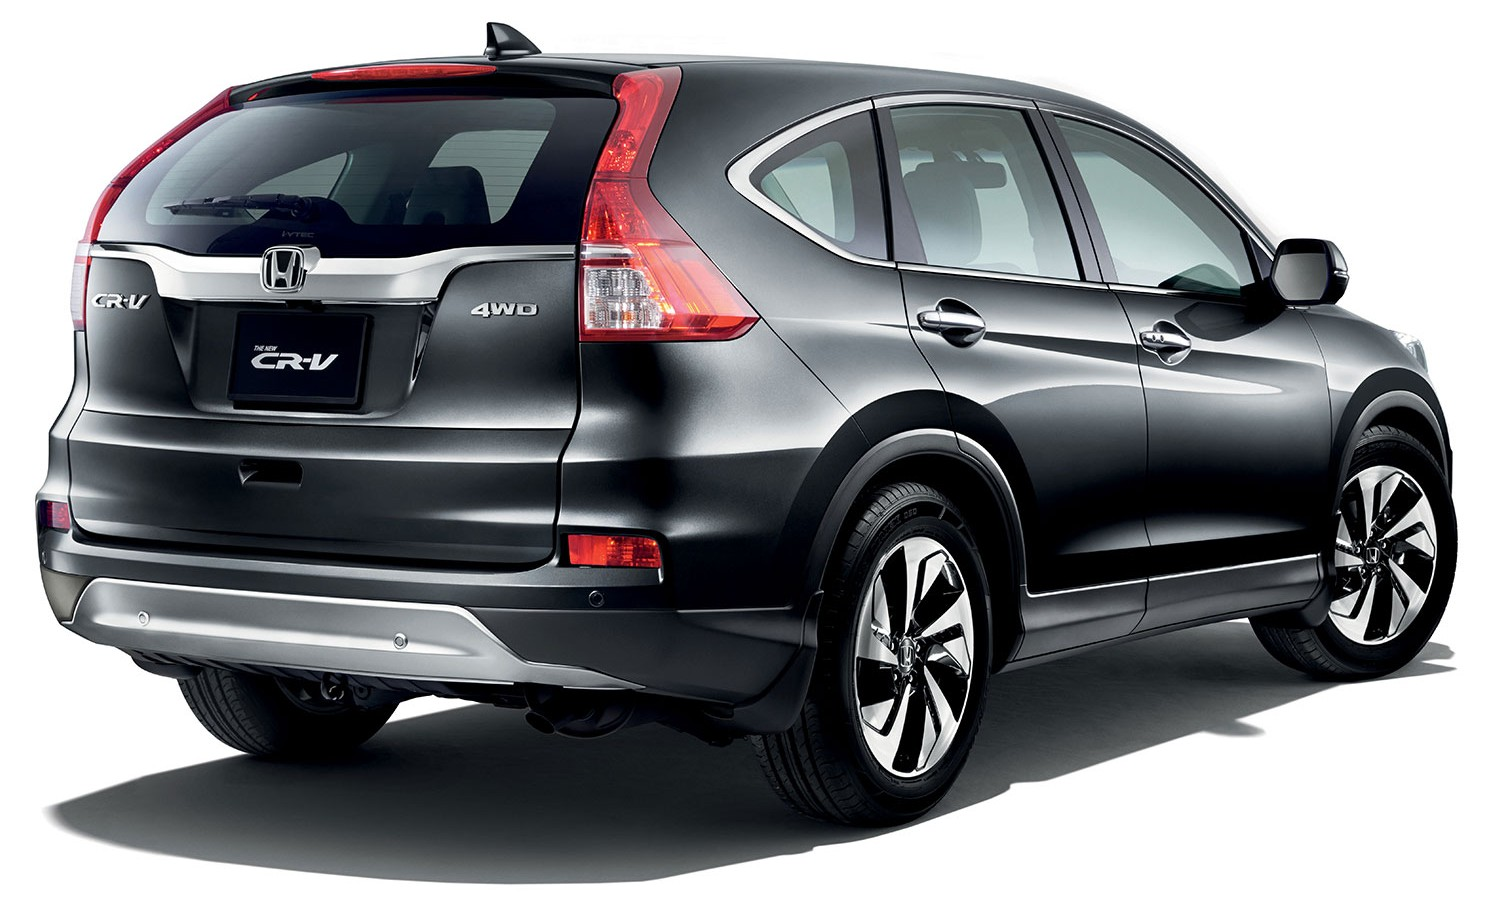 honda cr v facelift launched in malaysia new 2 0l 2wd 2 0l 4wd. Black Bedroom Furniture Sets. Home Design Ideas